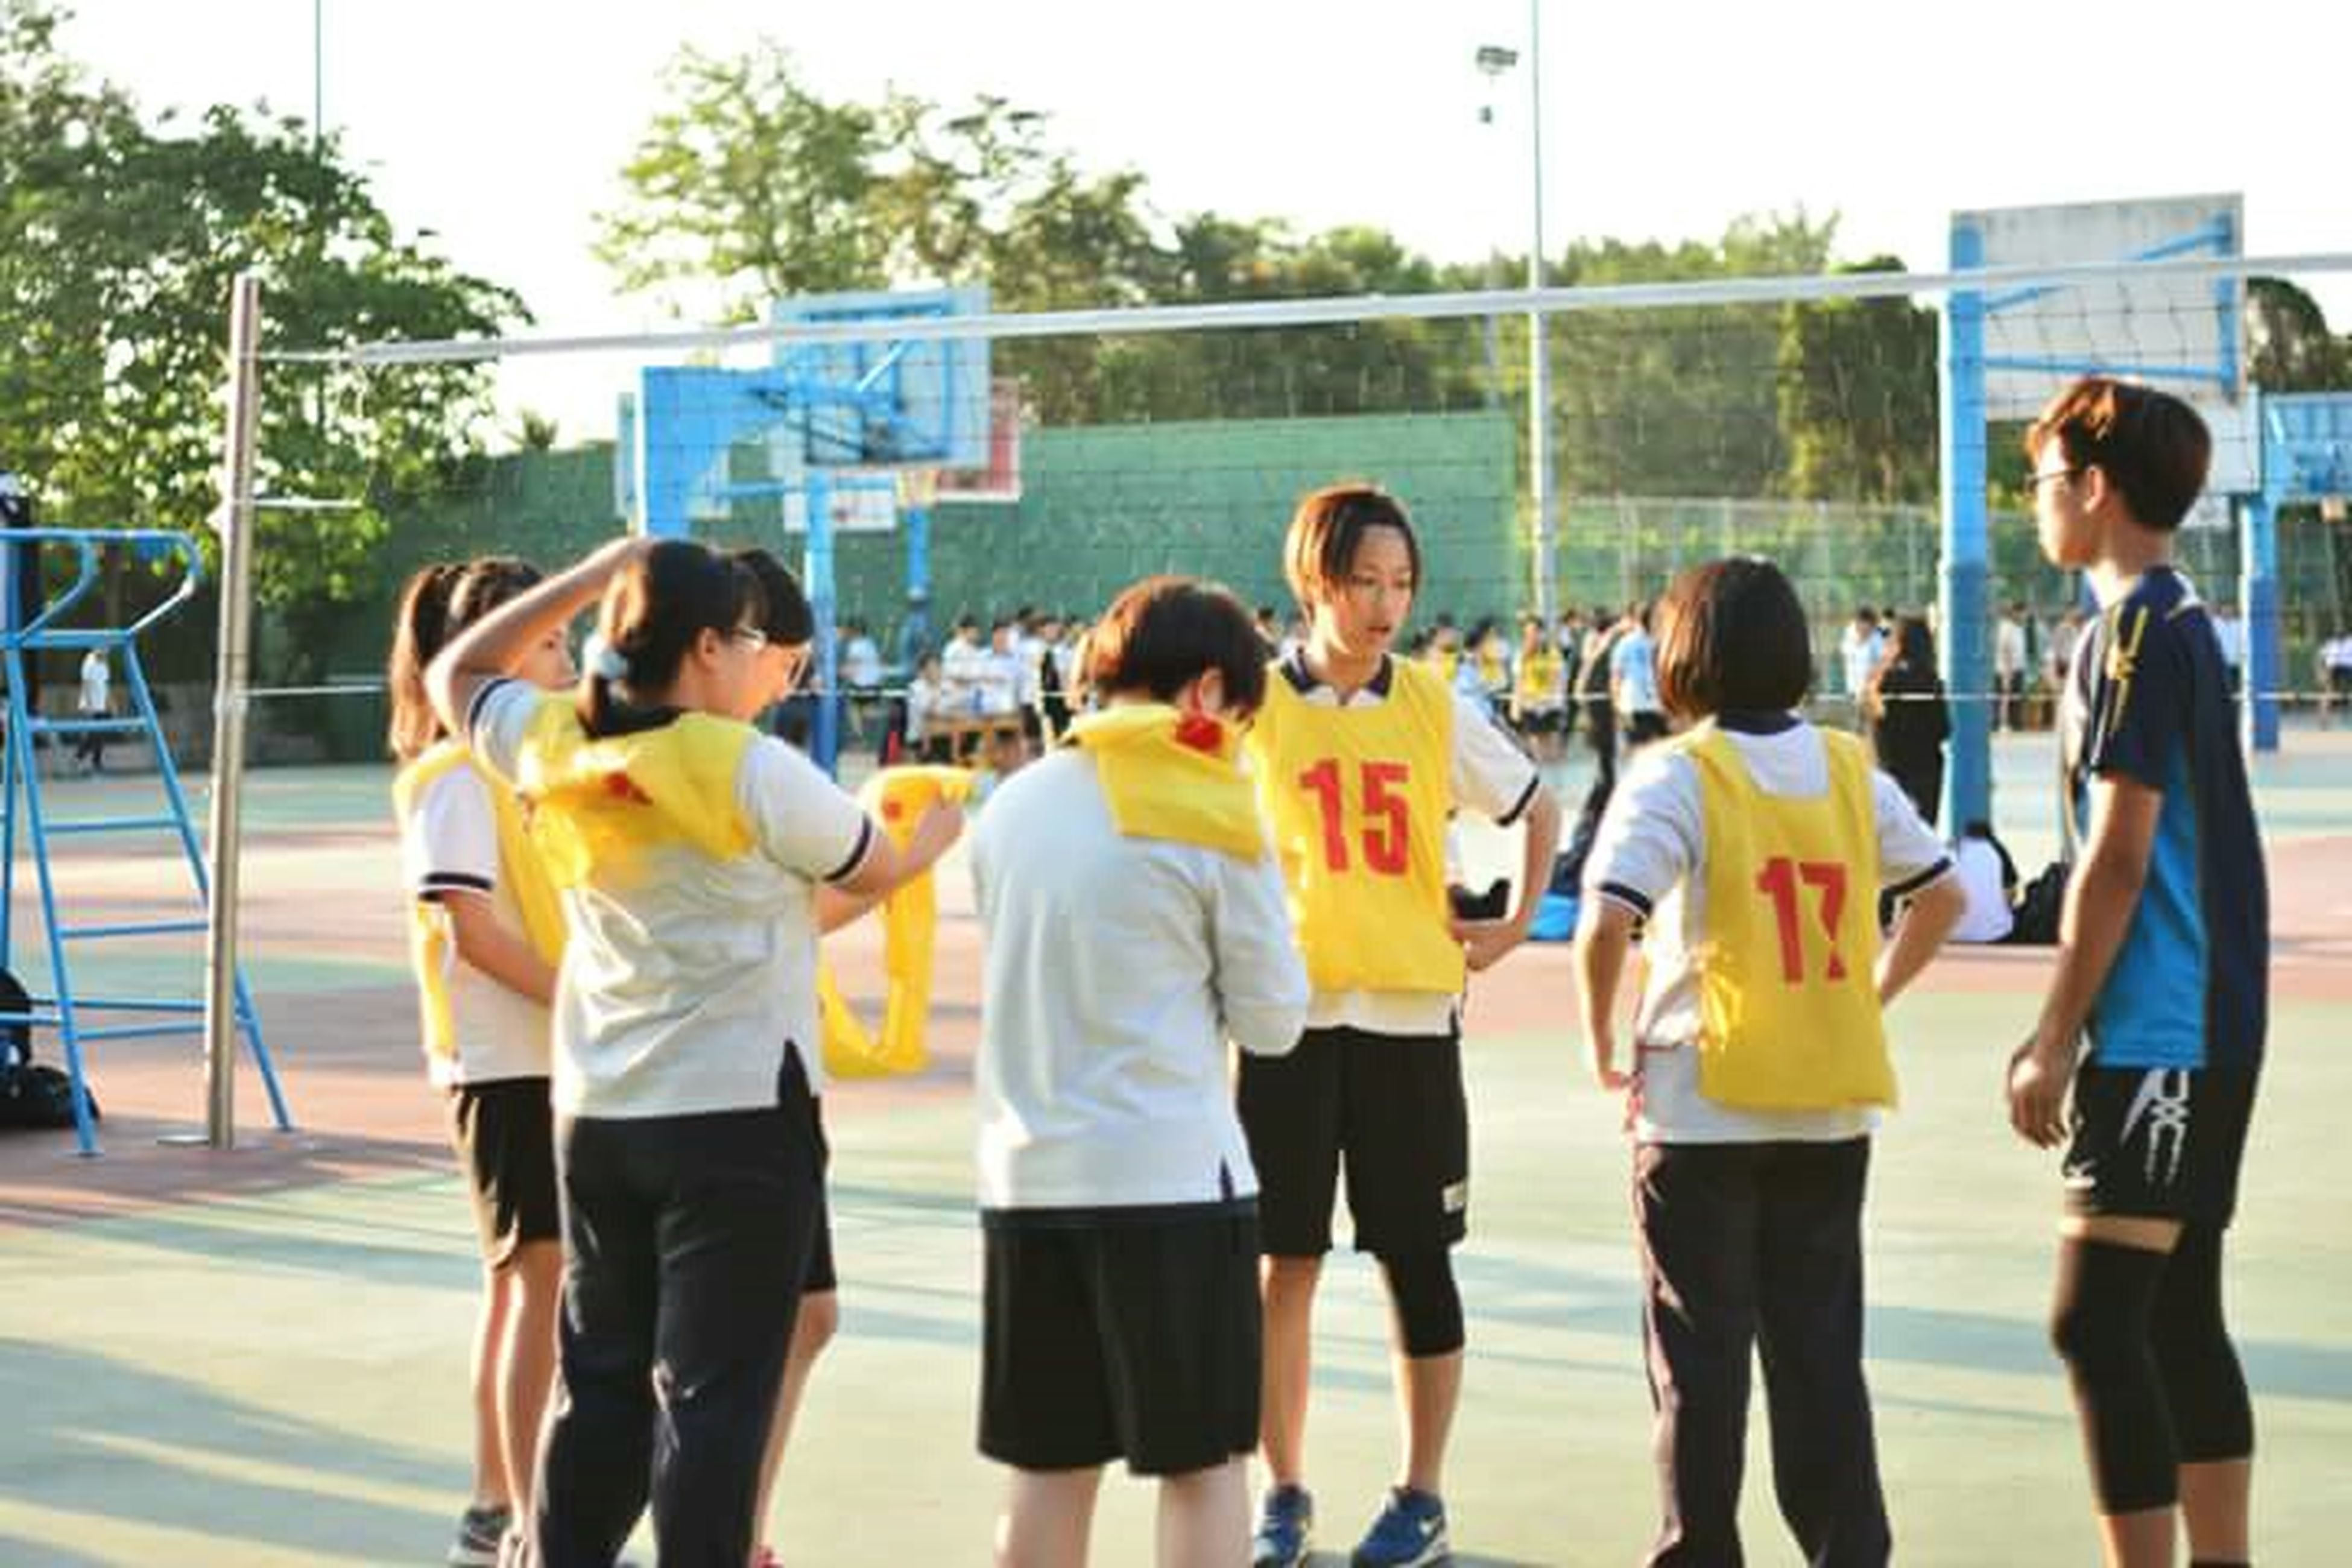 A team Volleyball Game Enjoy The Moment